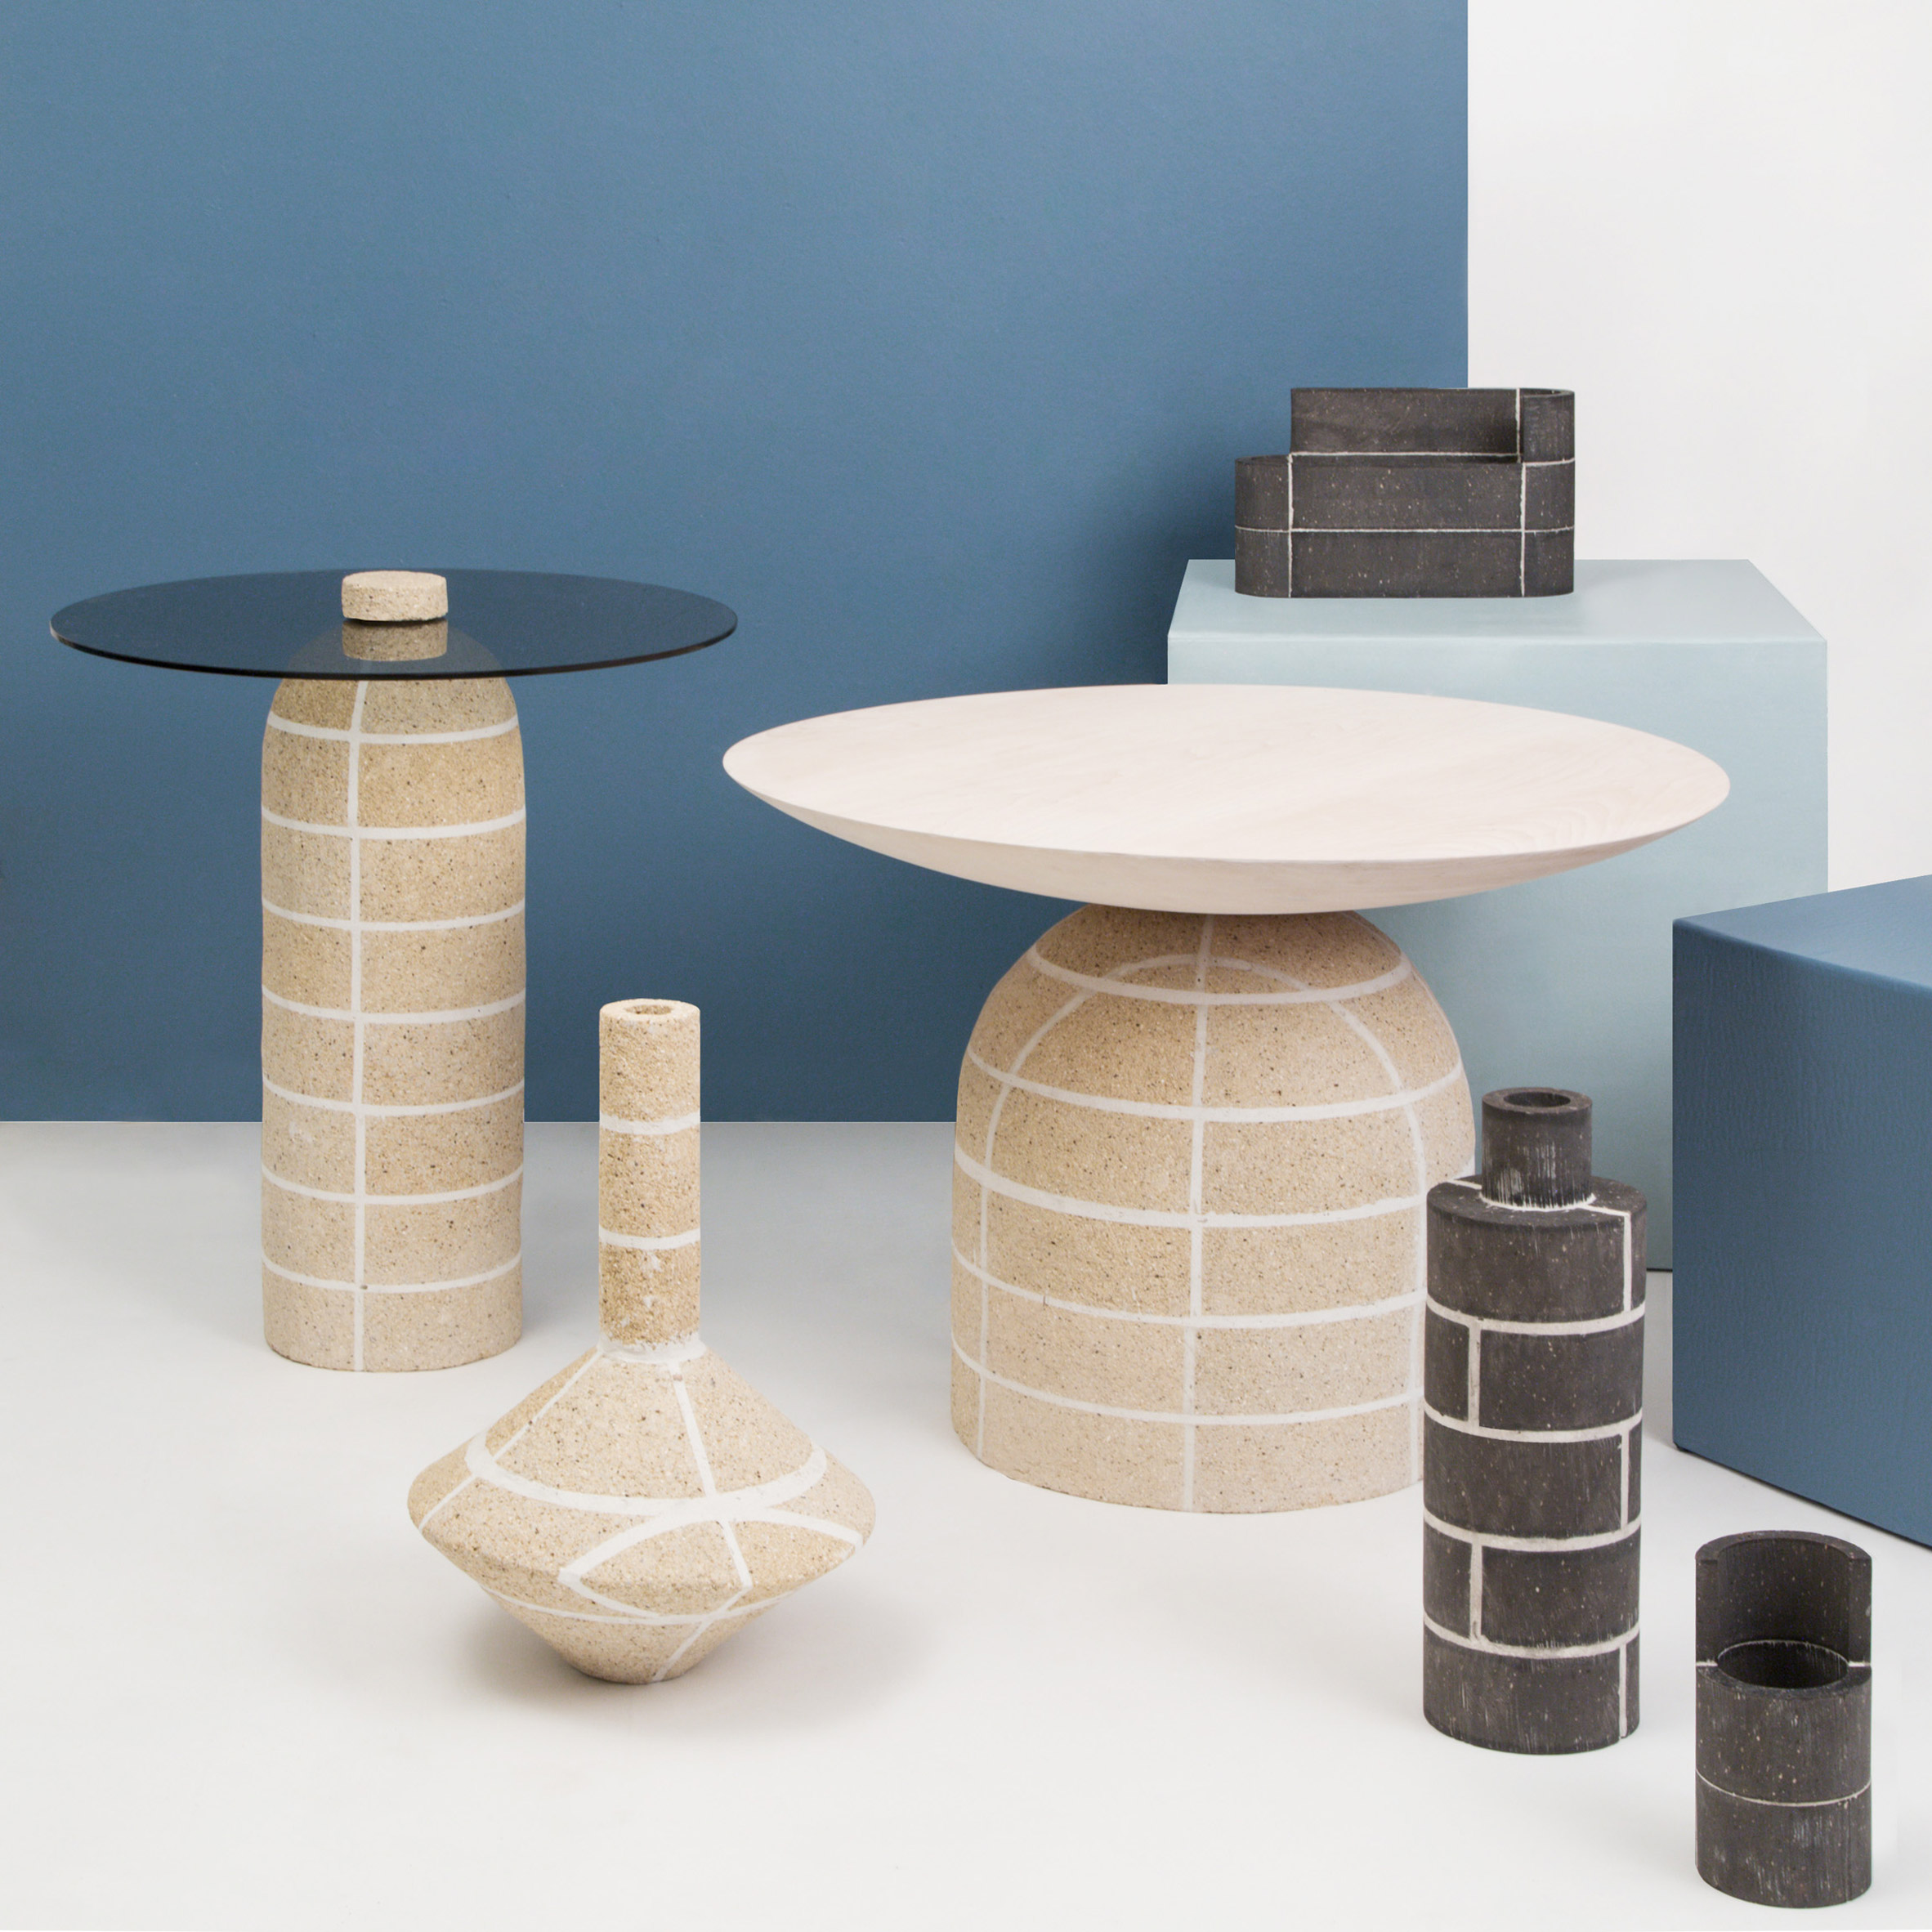 Sight Unseen pairs Norwegian and American designers